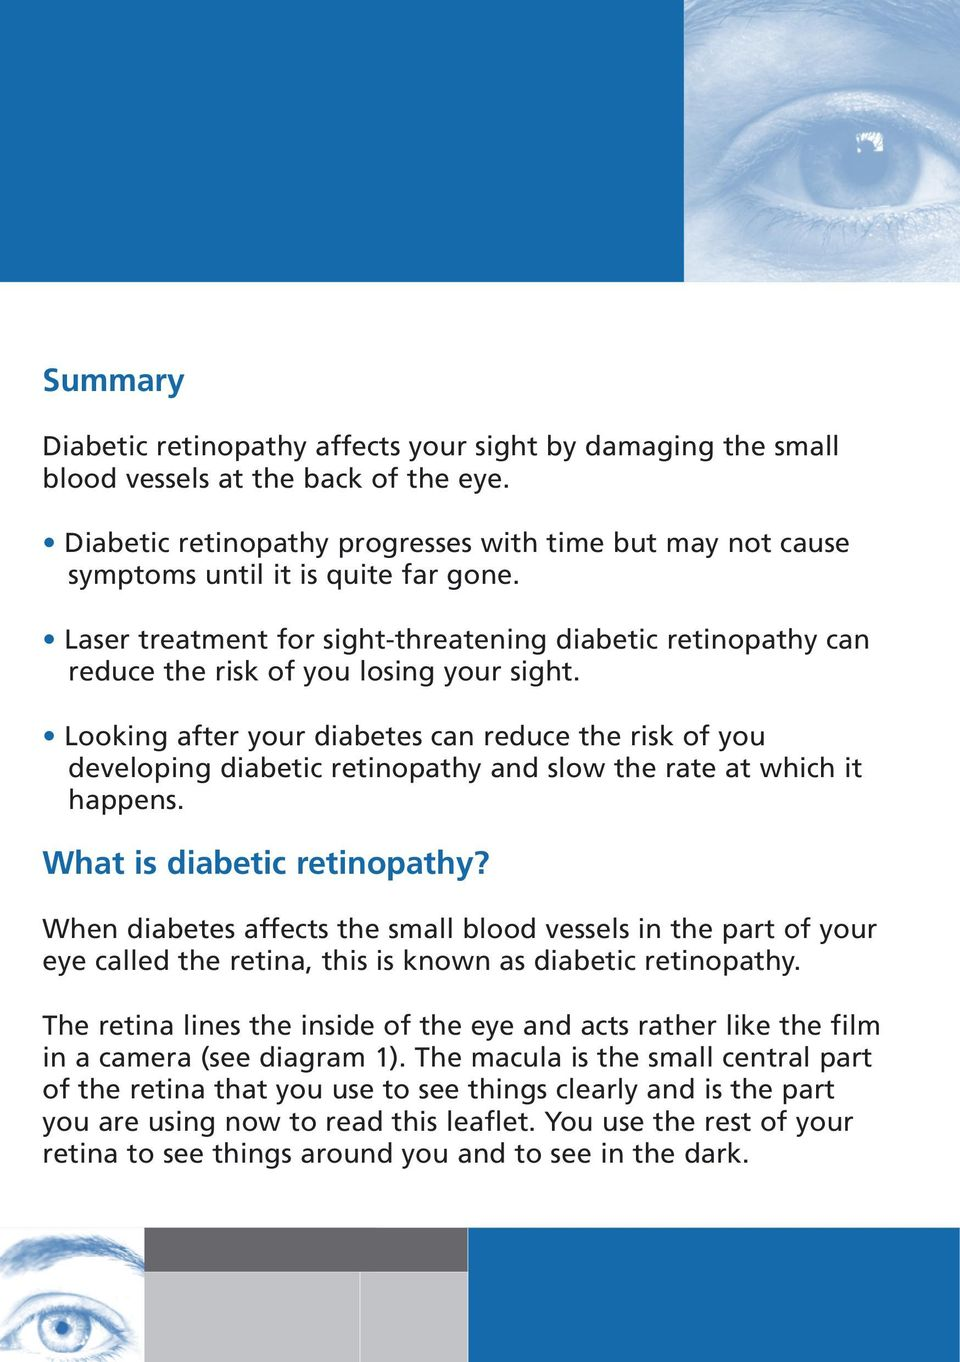 Laser treatment for sight-threatening diabetic retinopathy can reduce the risk of you losing your sight.